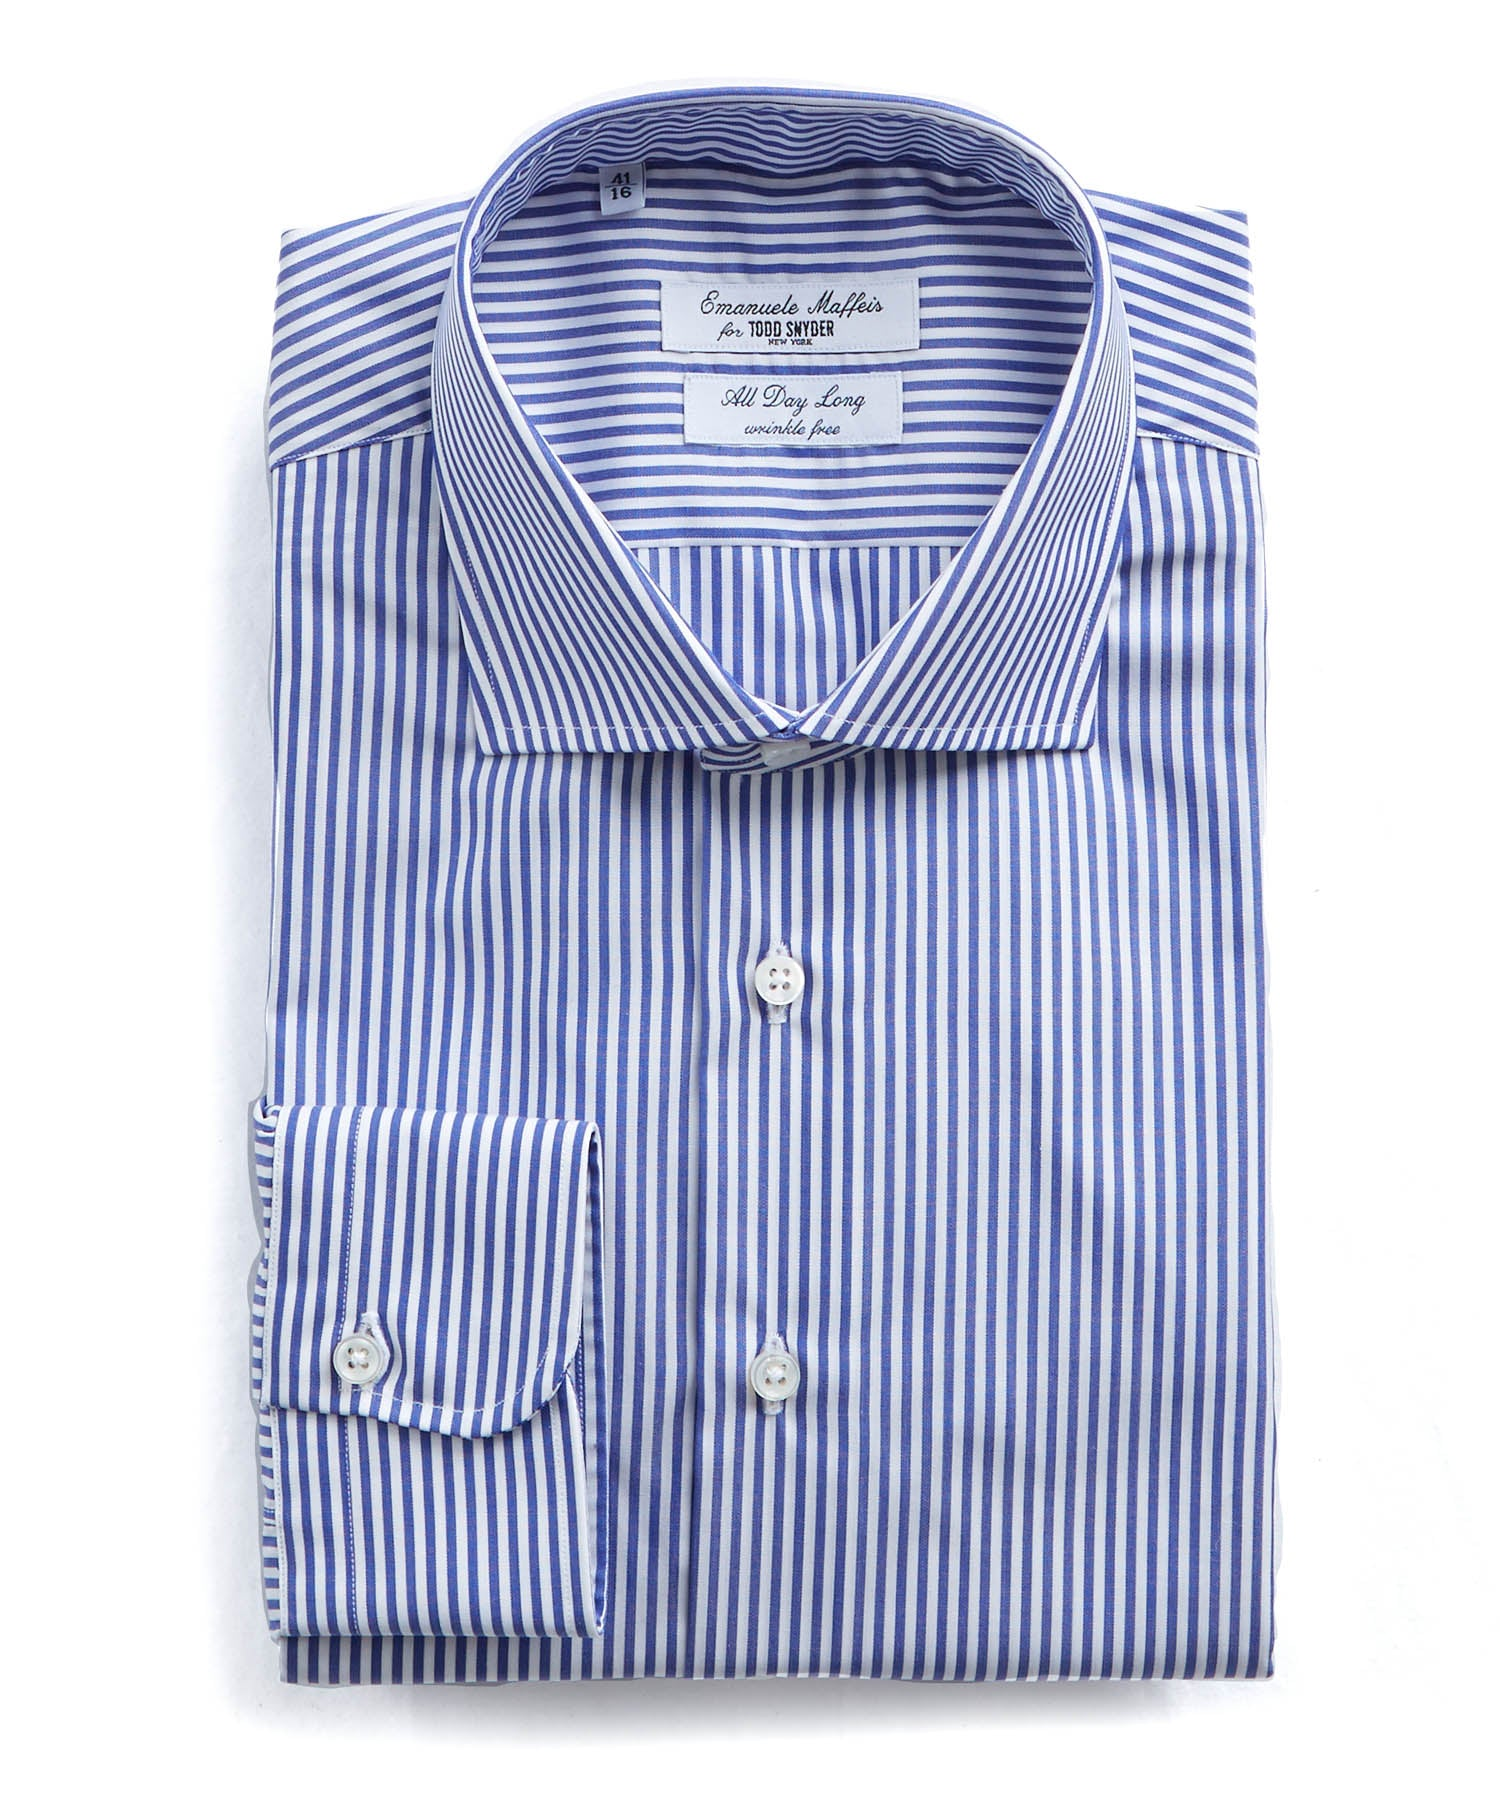 Emanuele Maffeis + Todd Snyder Banker Stripe Wrinkle Free Dress Shirt